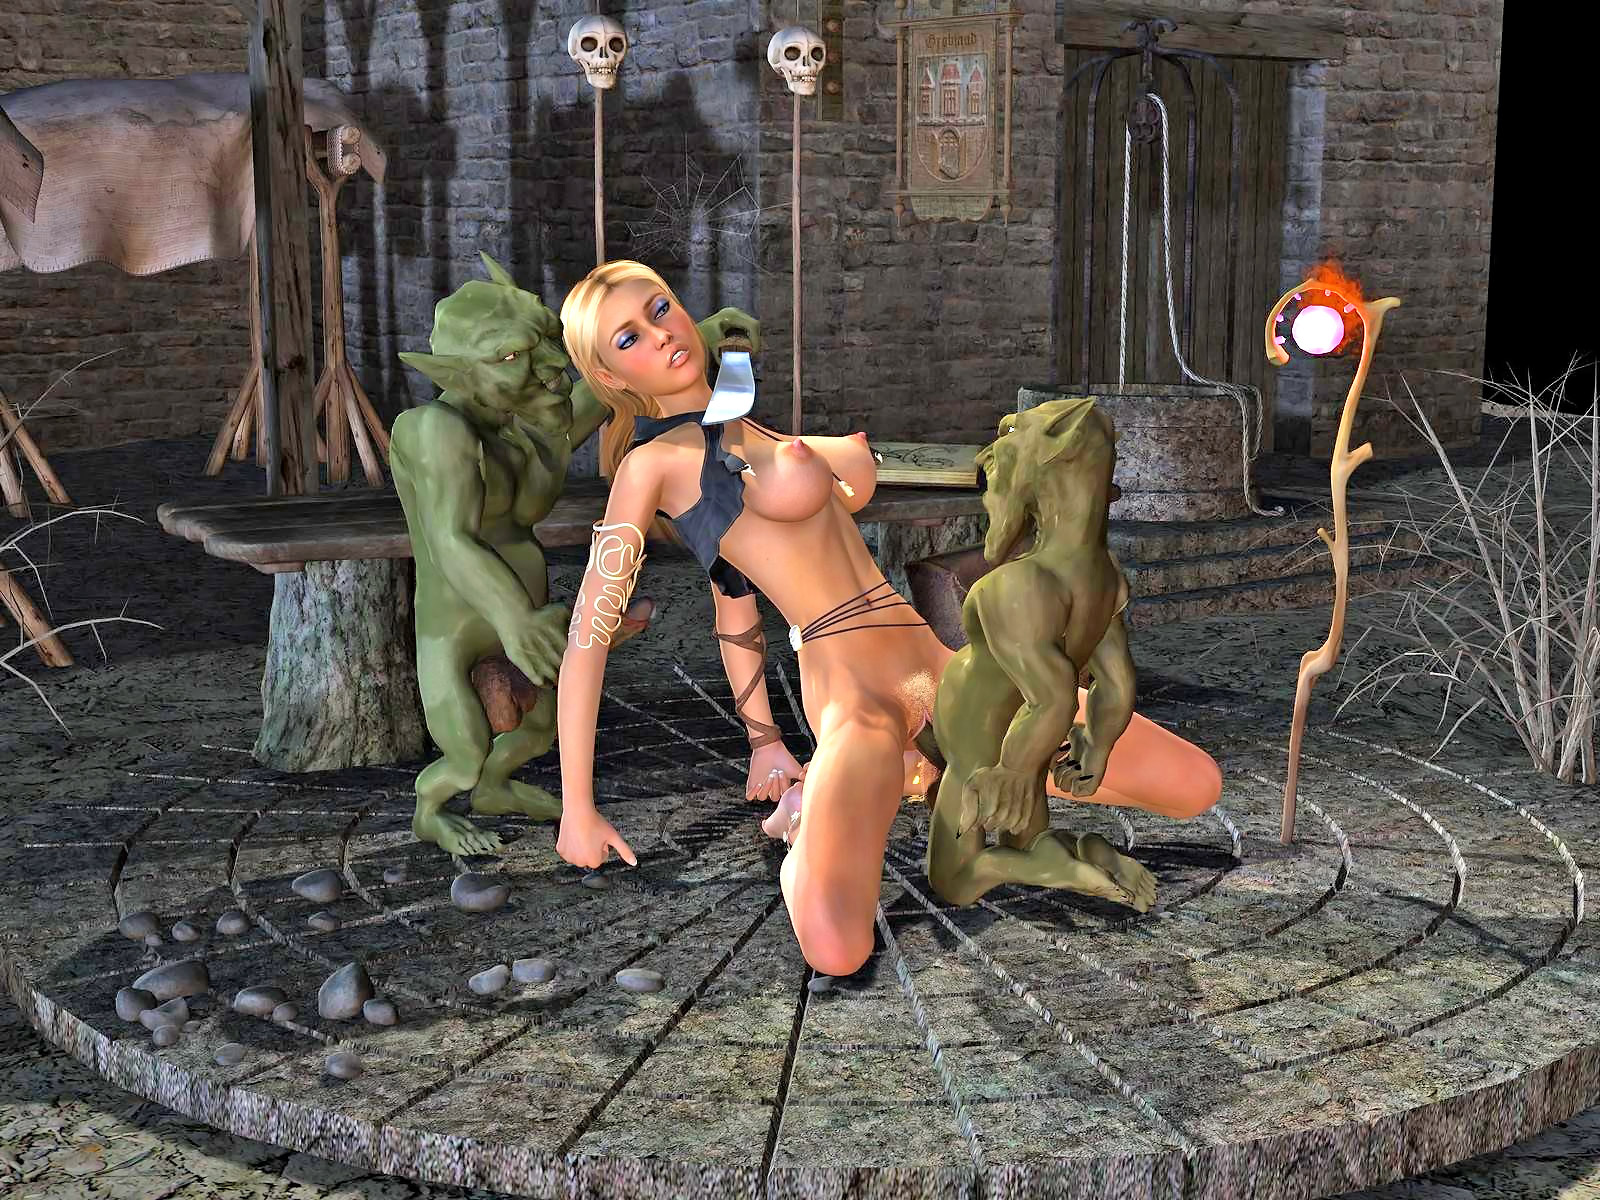 Picsik monster hentai 3d adult drunk slaves